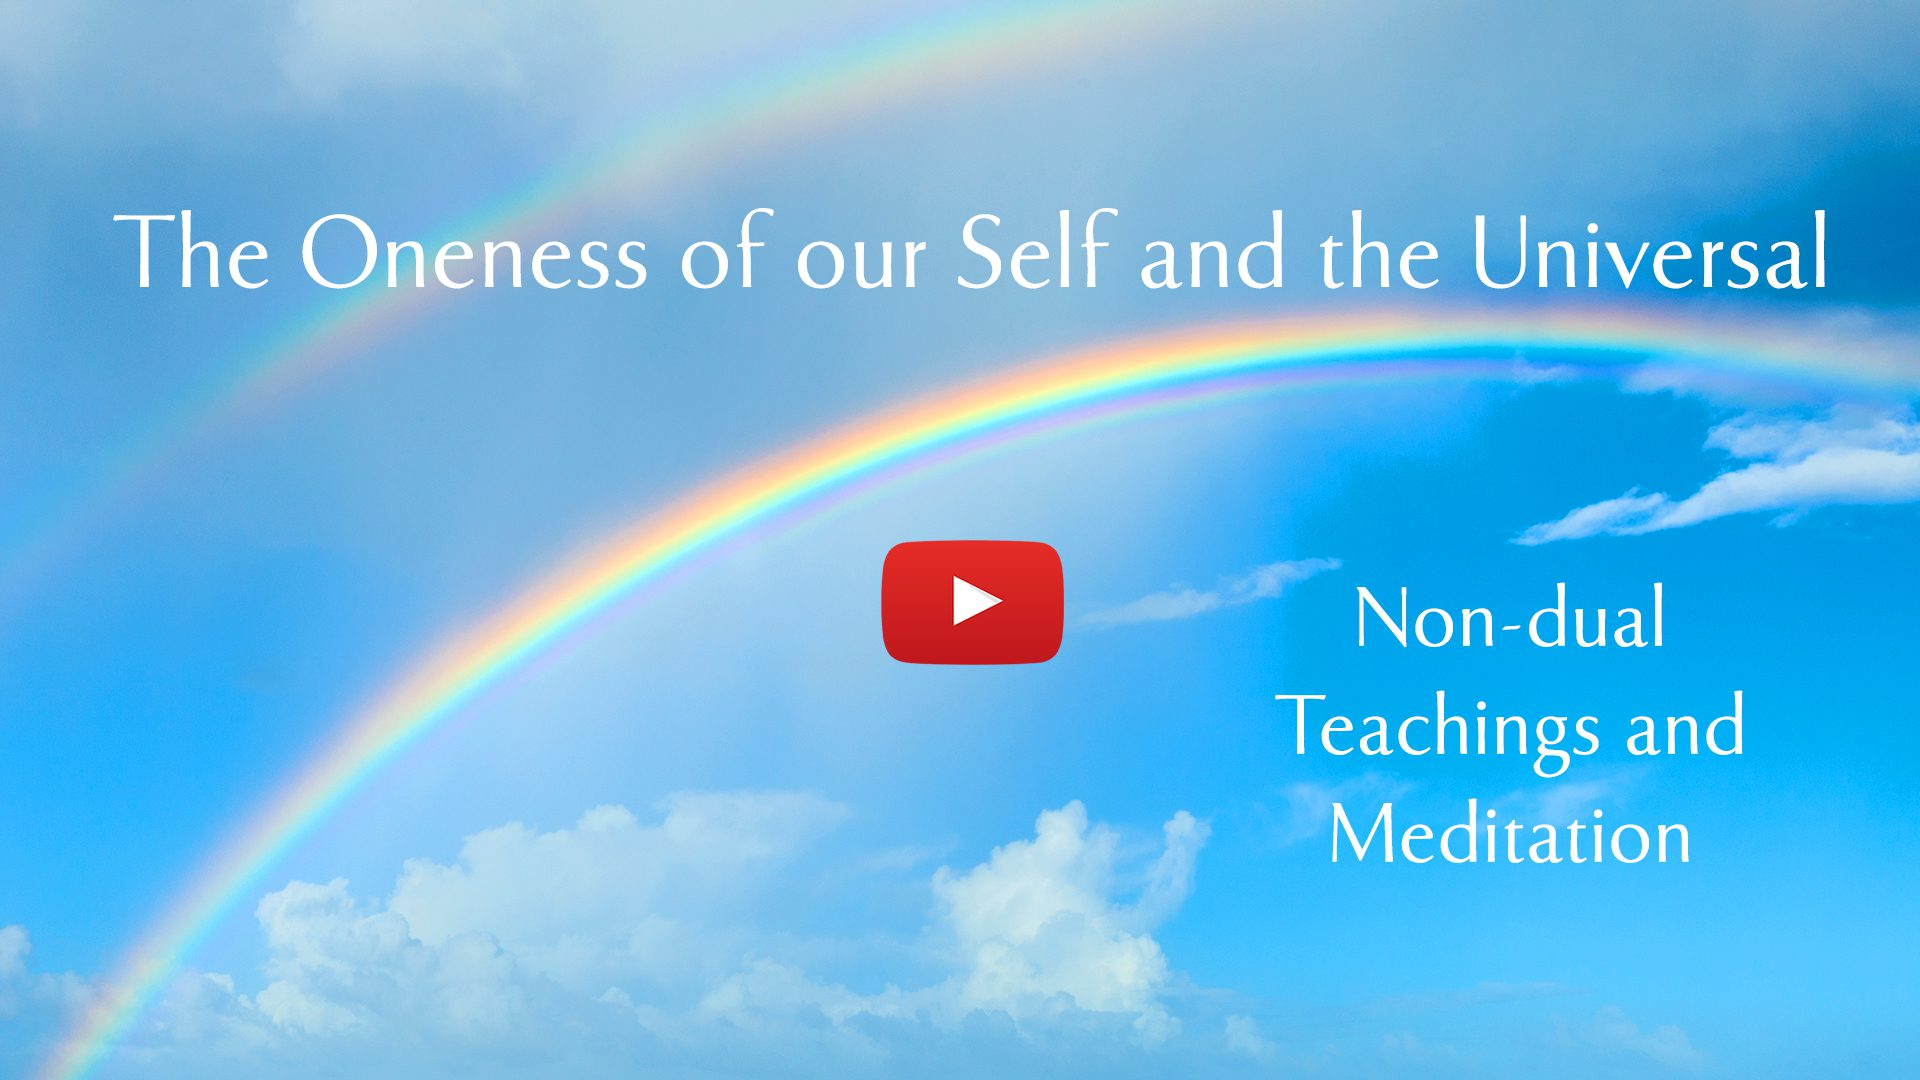 Sky and rainbow with link to non-dual meditation